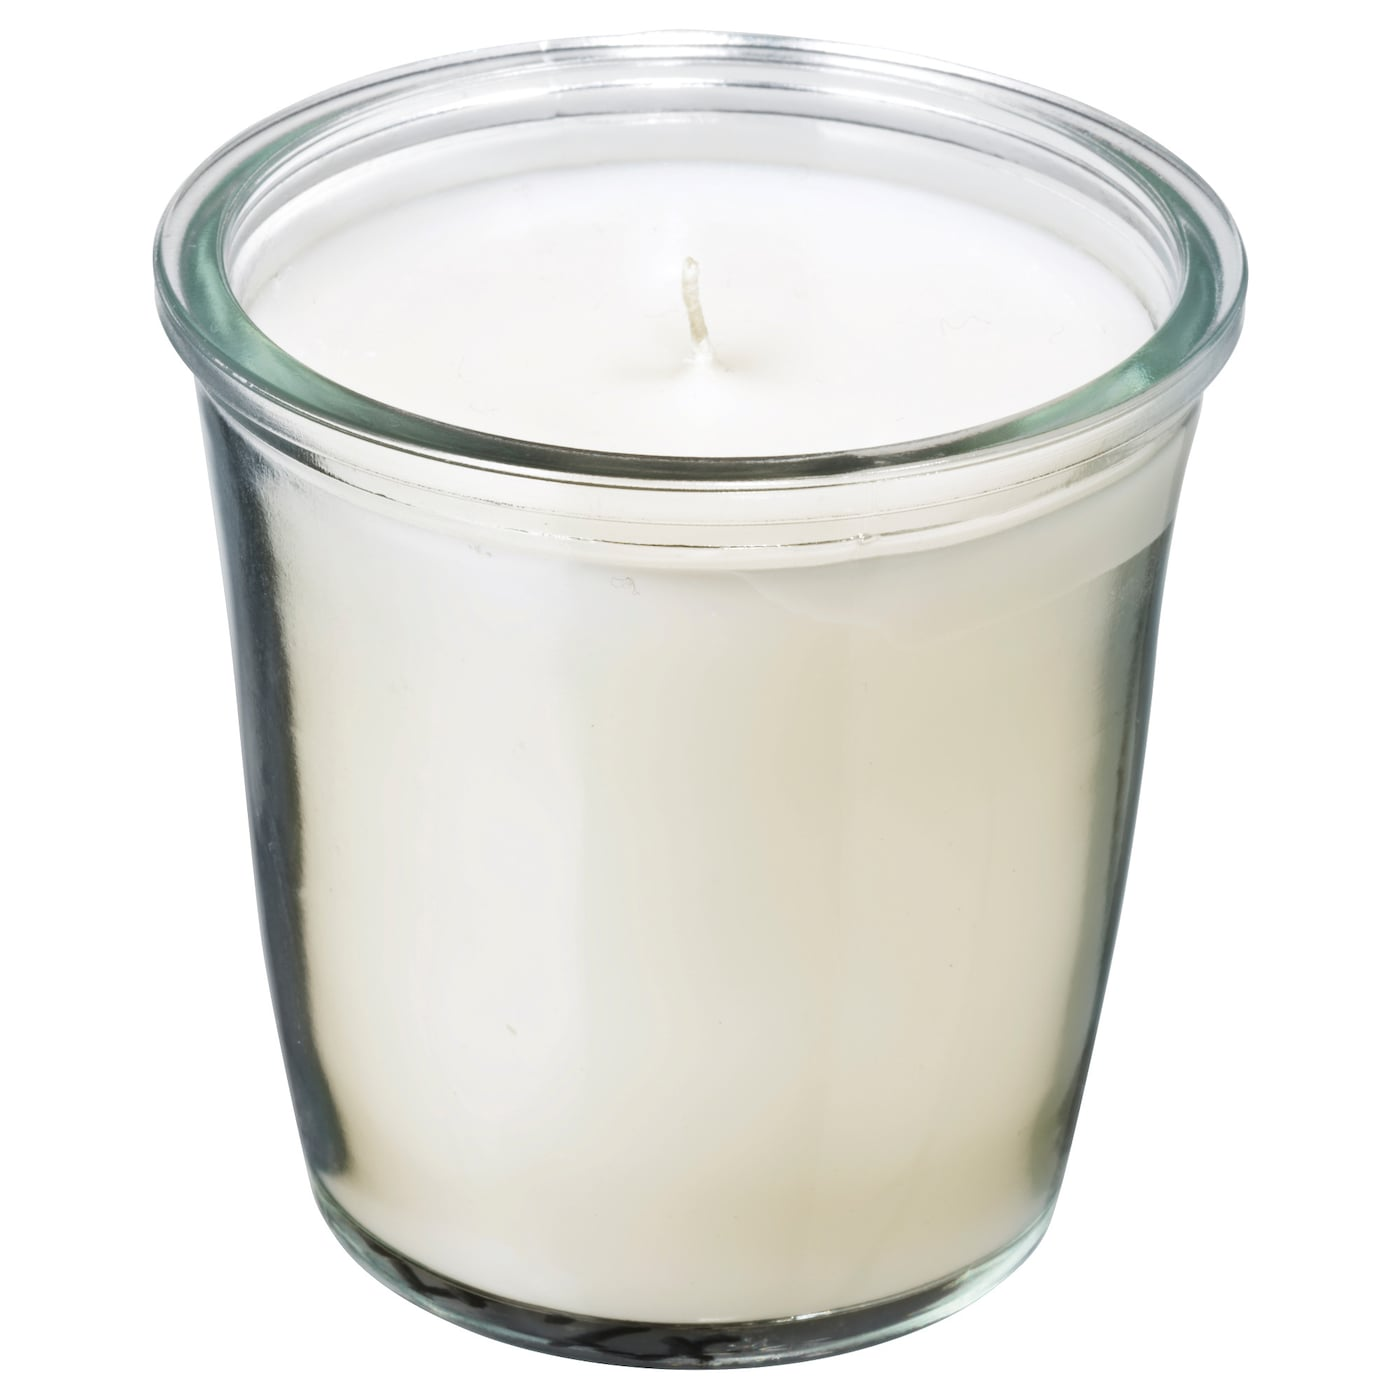 IKEA SMÅTREVLIG scented candle in glass Intense scent of vanilla with a hint of sea salt.